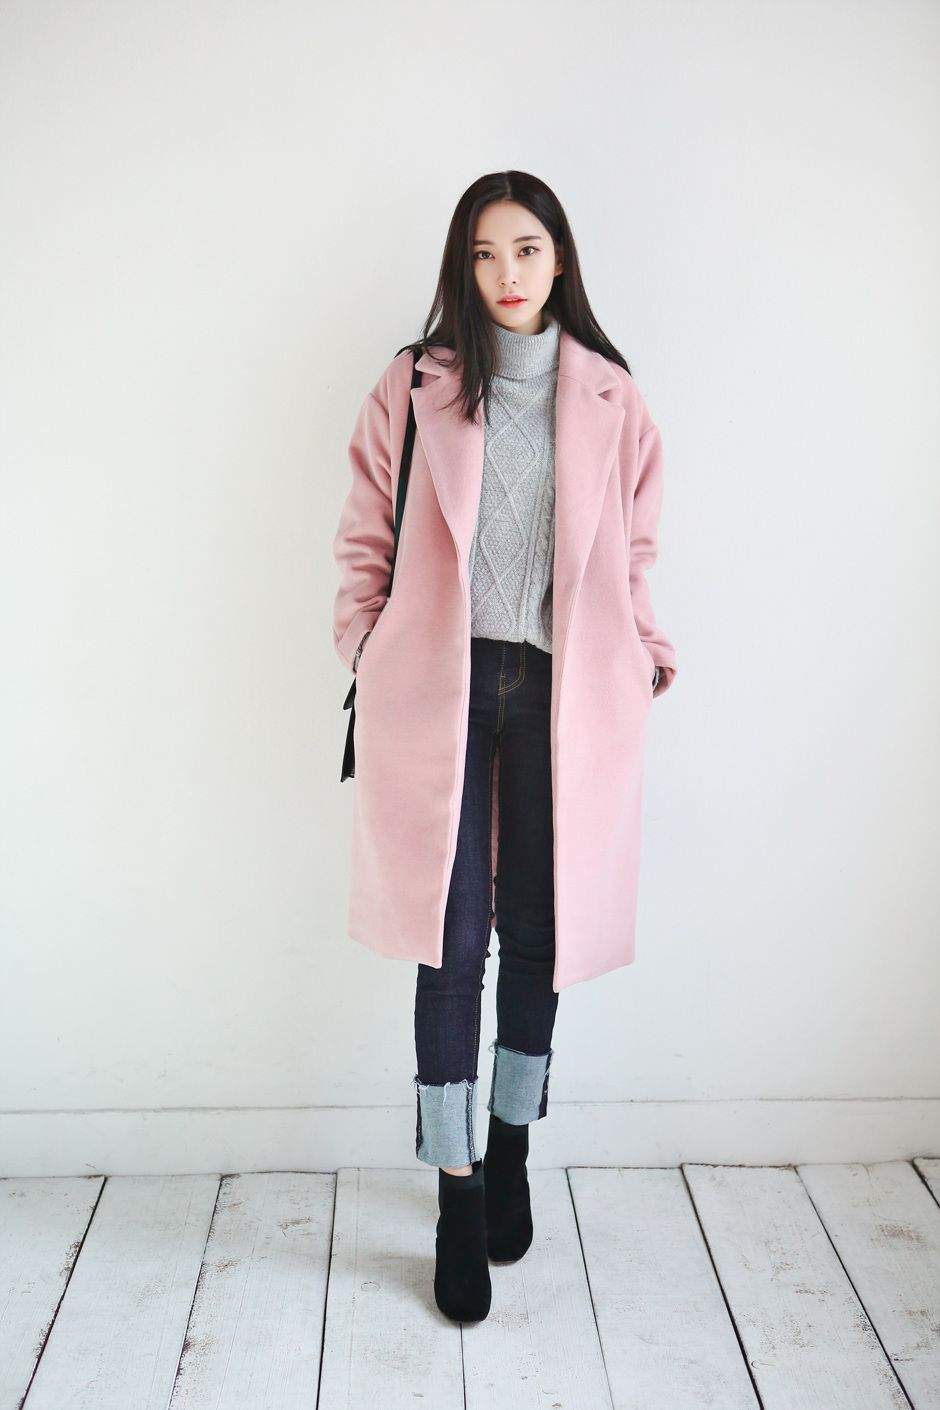 Pin By Greenteaurs On Style Is Eternal Korean Winter Fashion Outfits Korea Winter Fashion Korean Fashion Trends